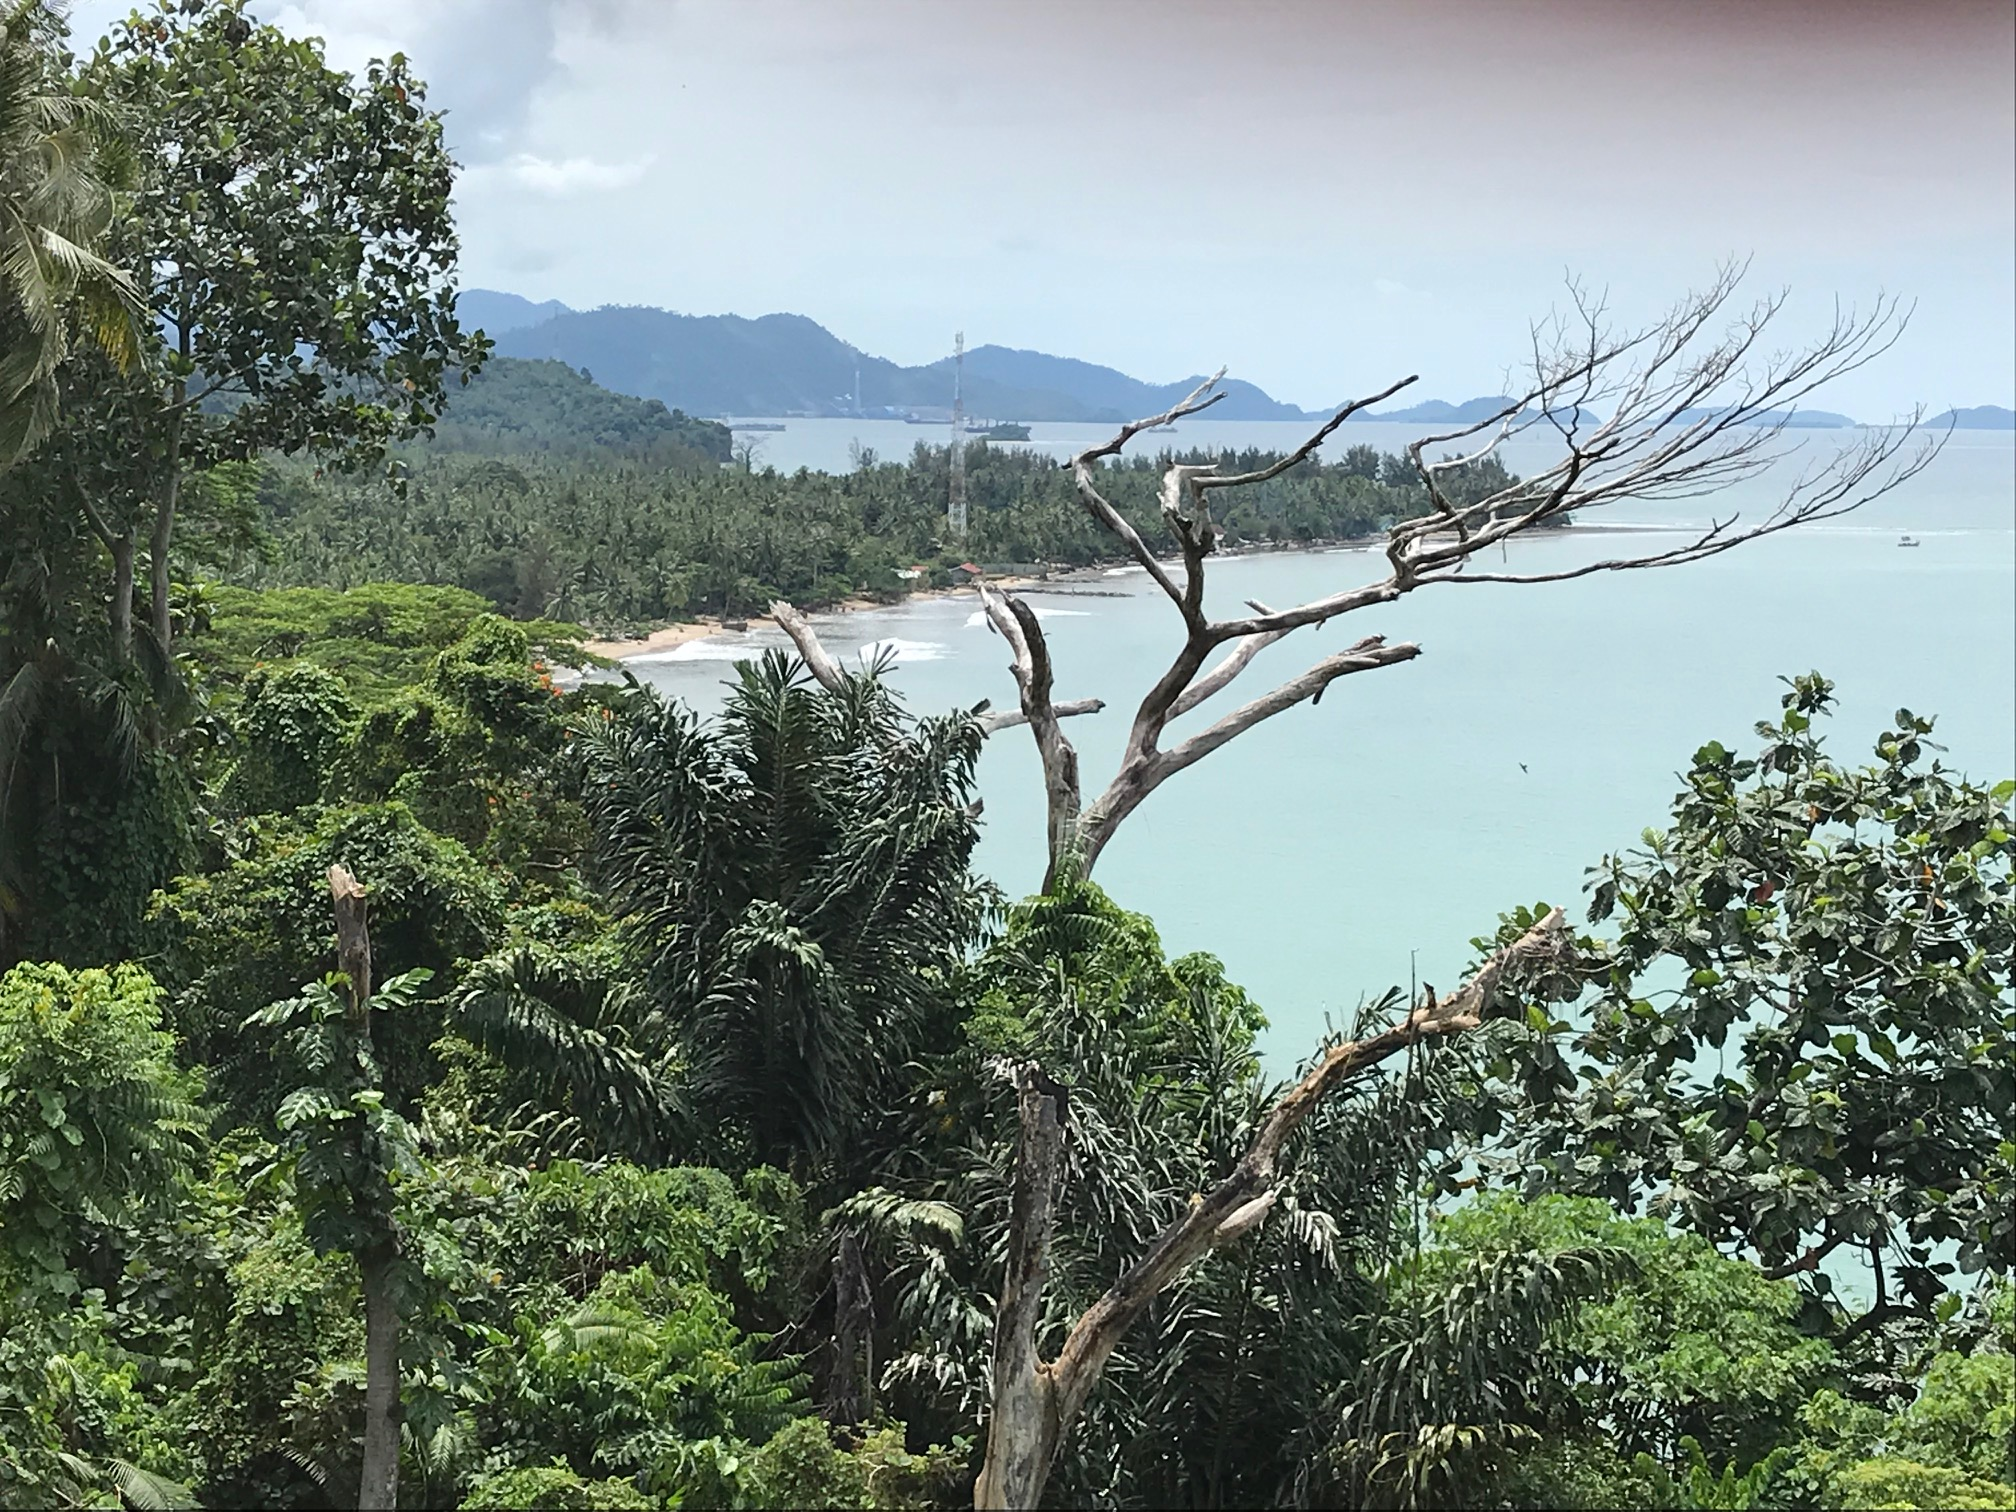 The coastline of West Sumatra in Padang. Photo by Paul Marshall.